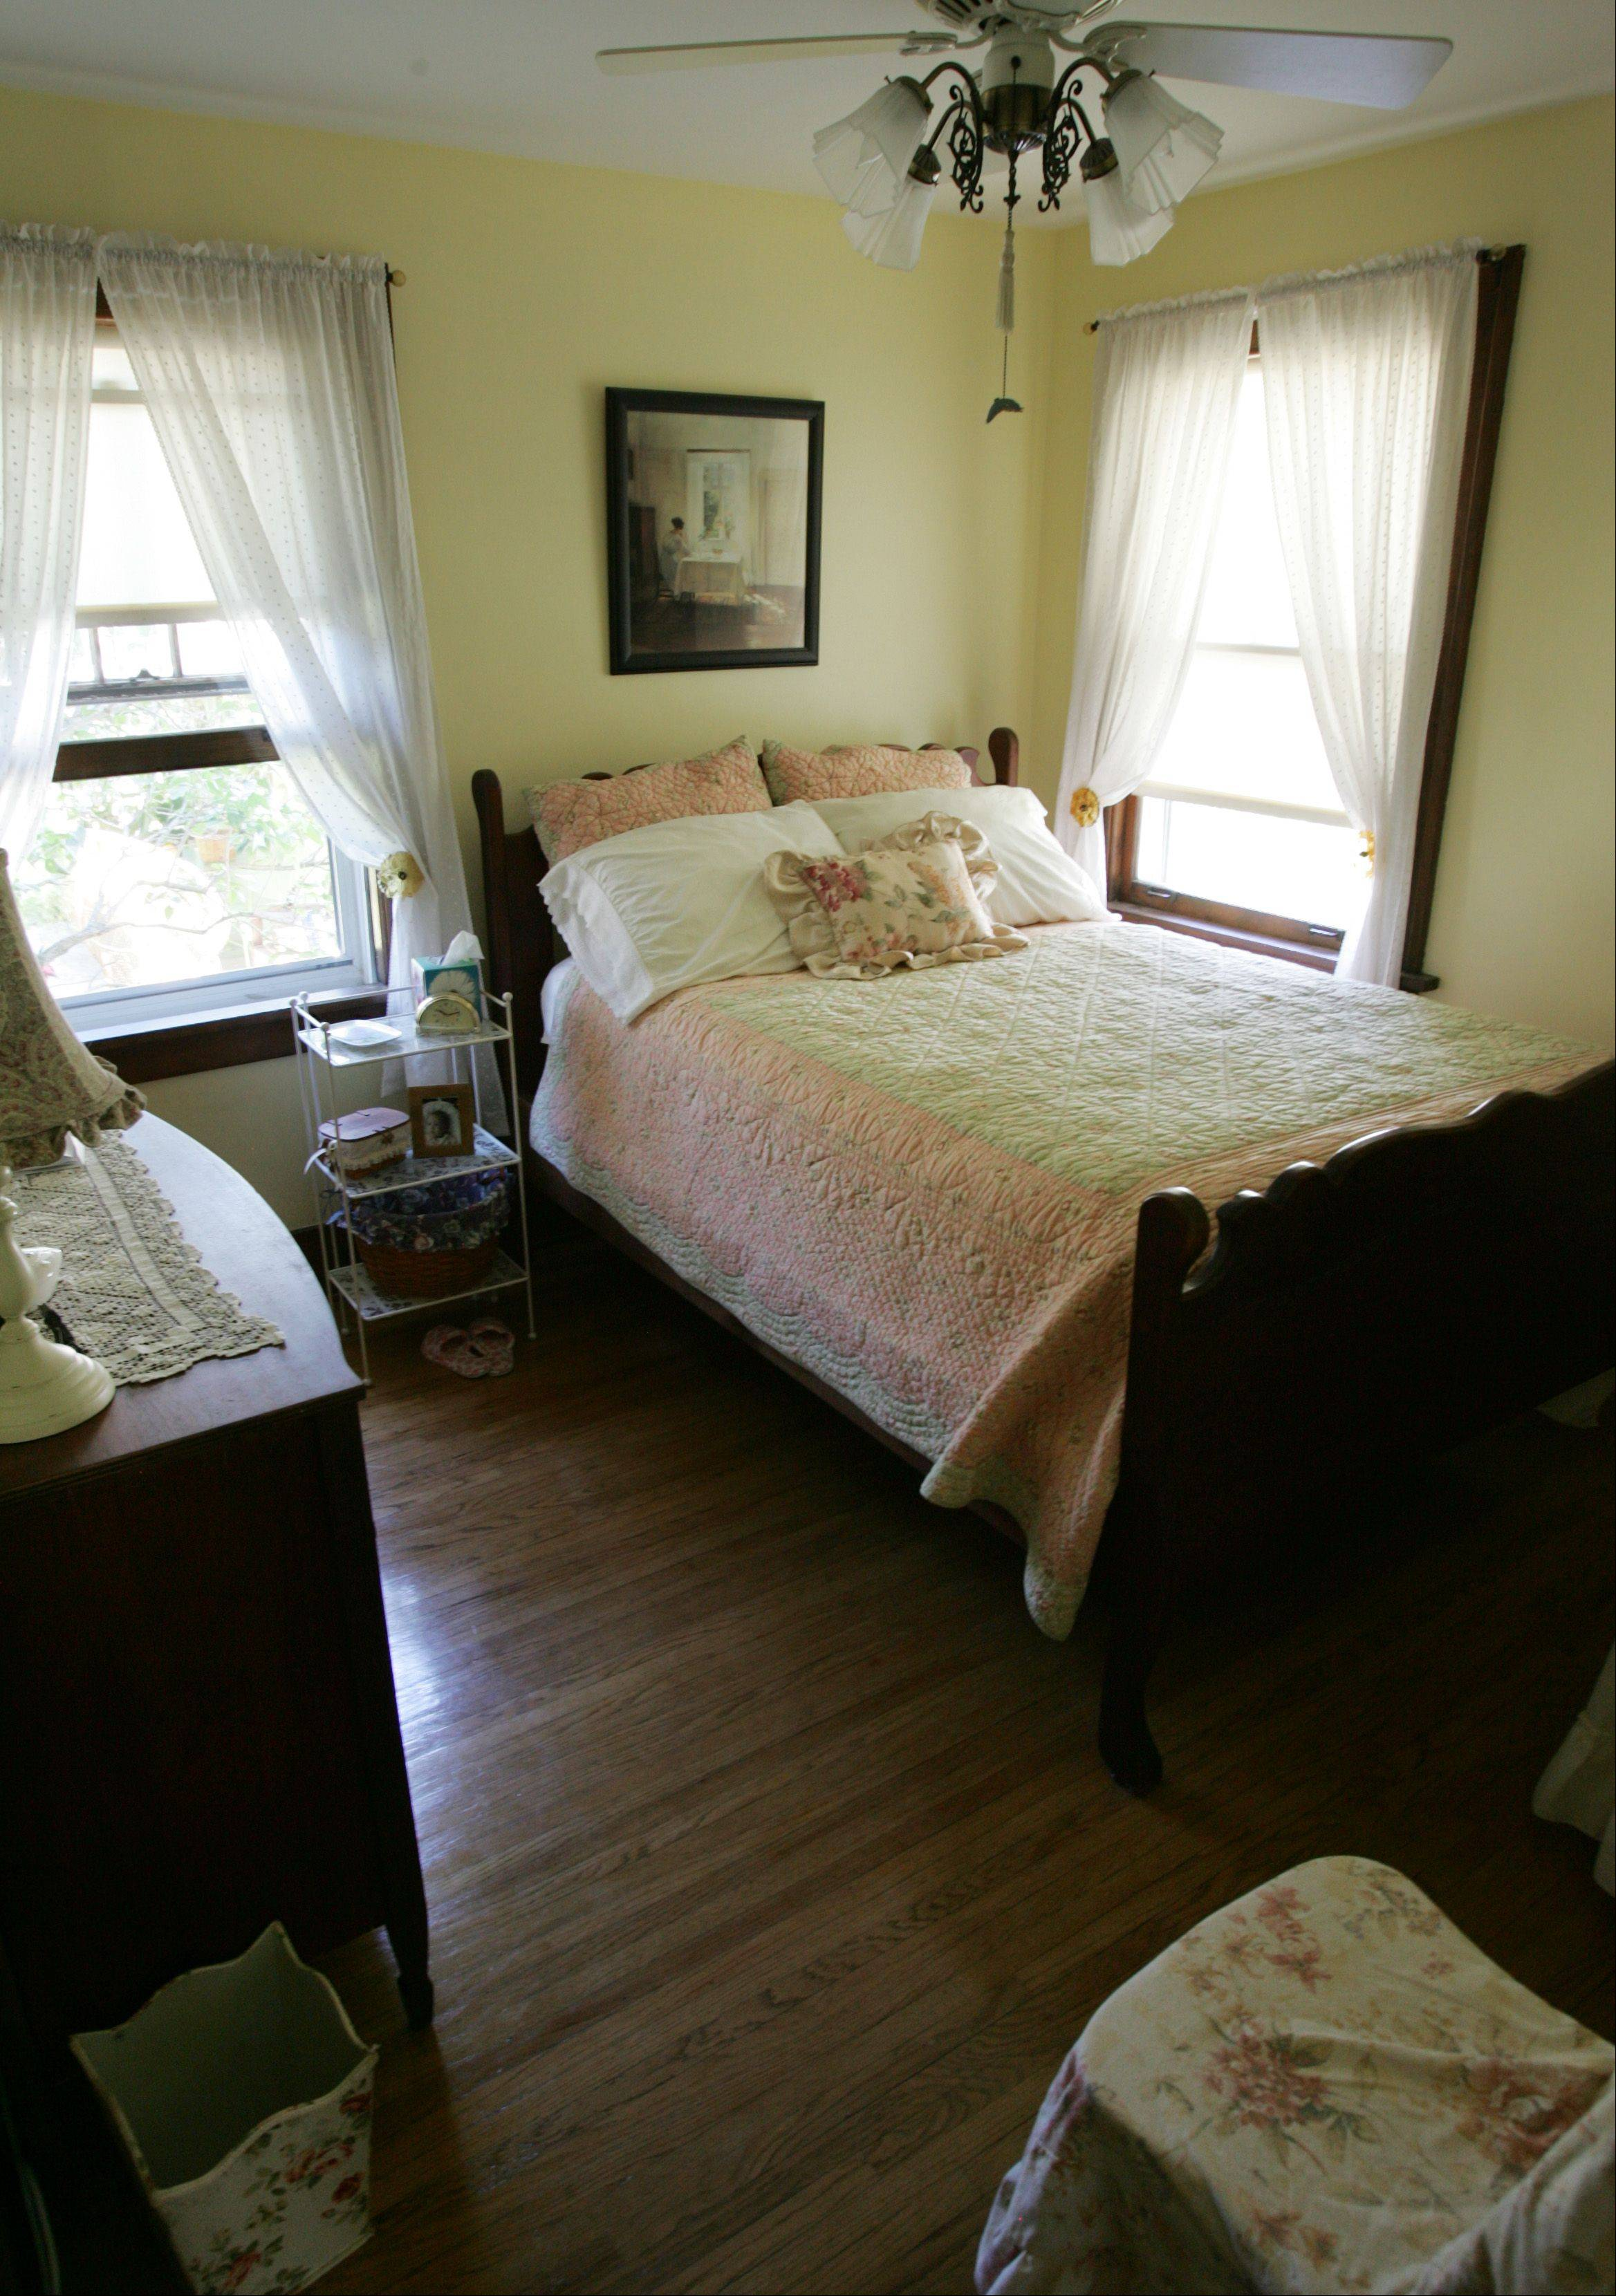 A second bedroom fills with midday sunshine at 356 Jewett St. in Elgin, part of the upcoming house tour.